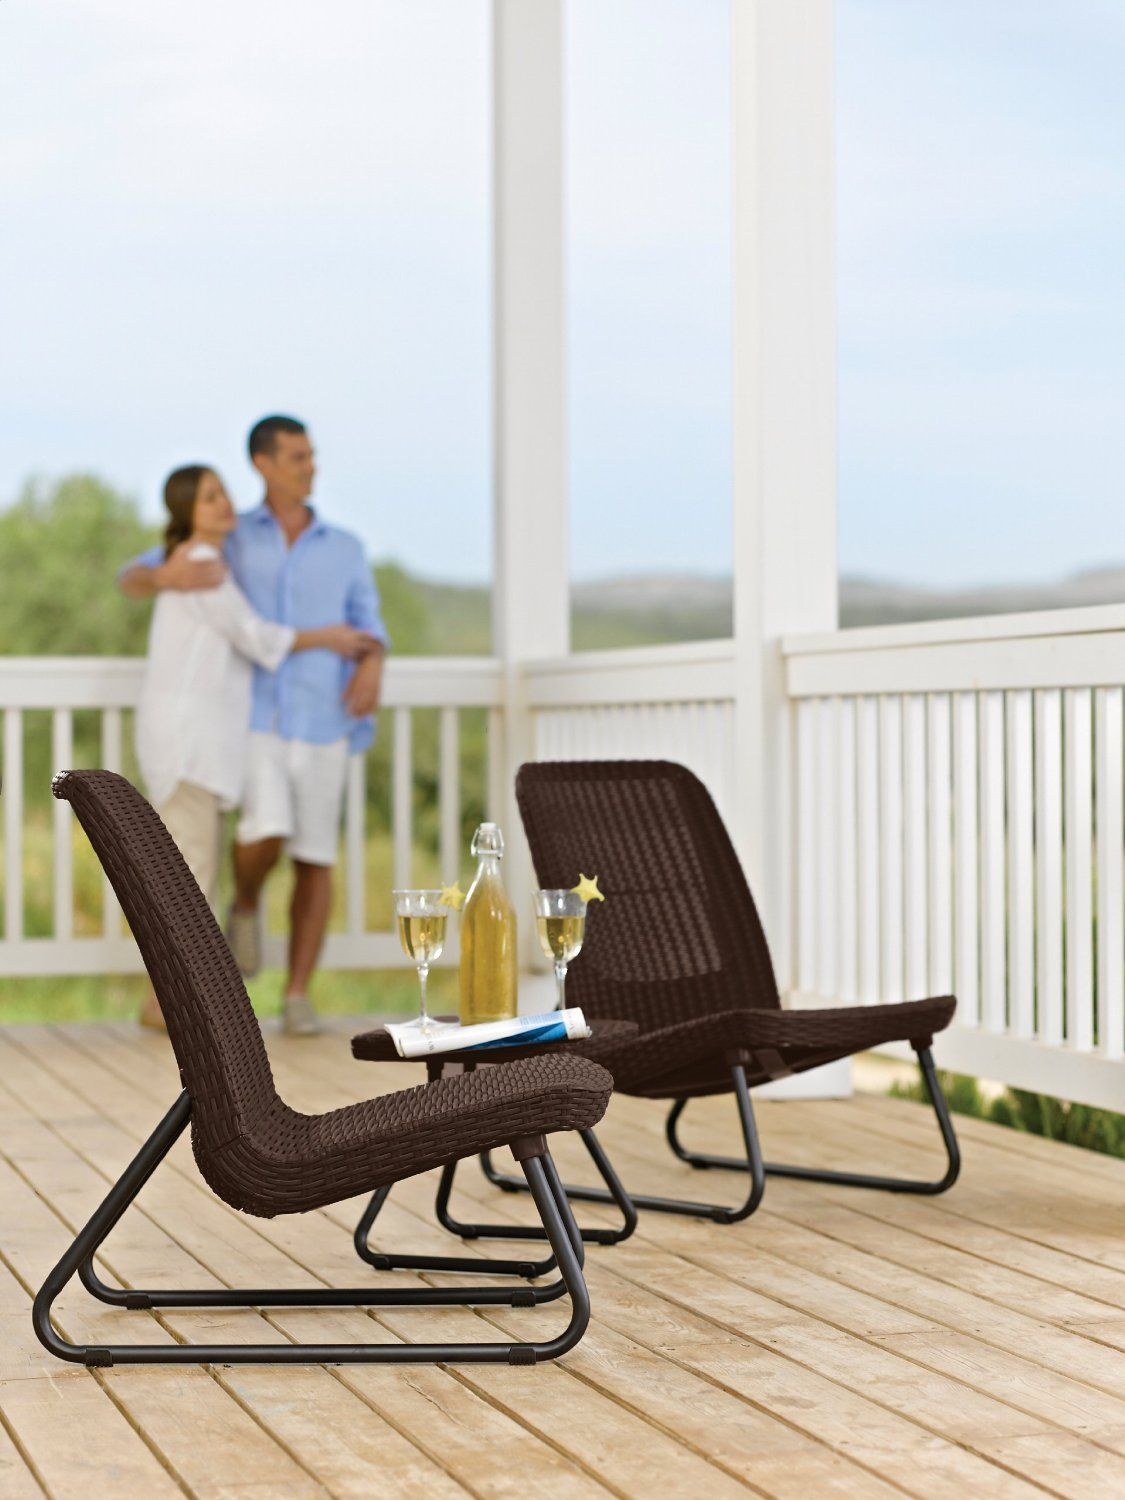 The Best Wicker Furniture For Your Outdoor Patio Keter Rio 3 Pc